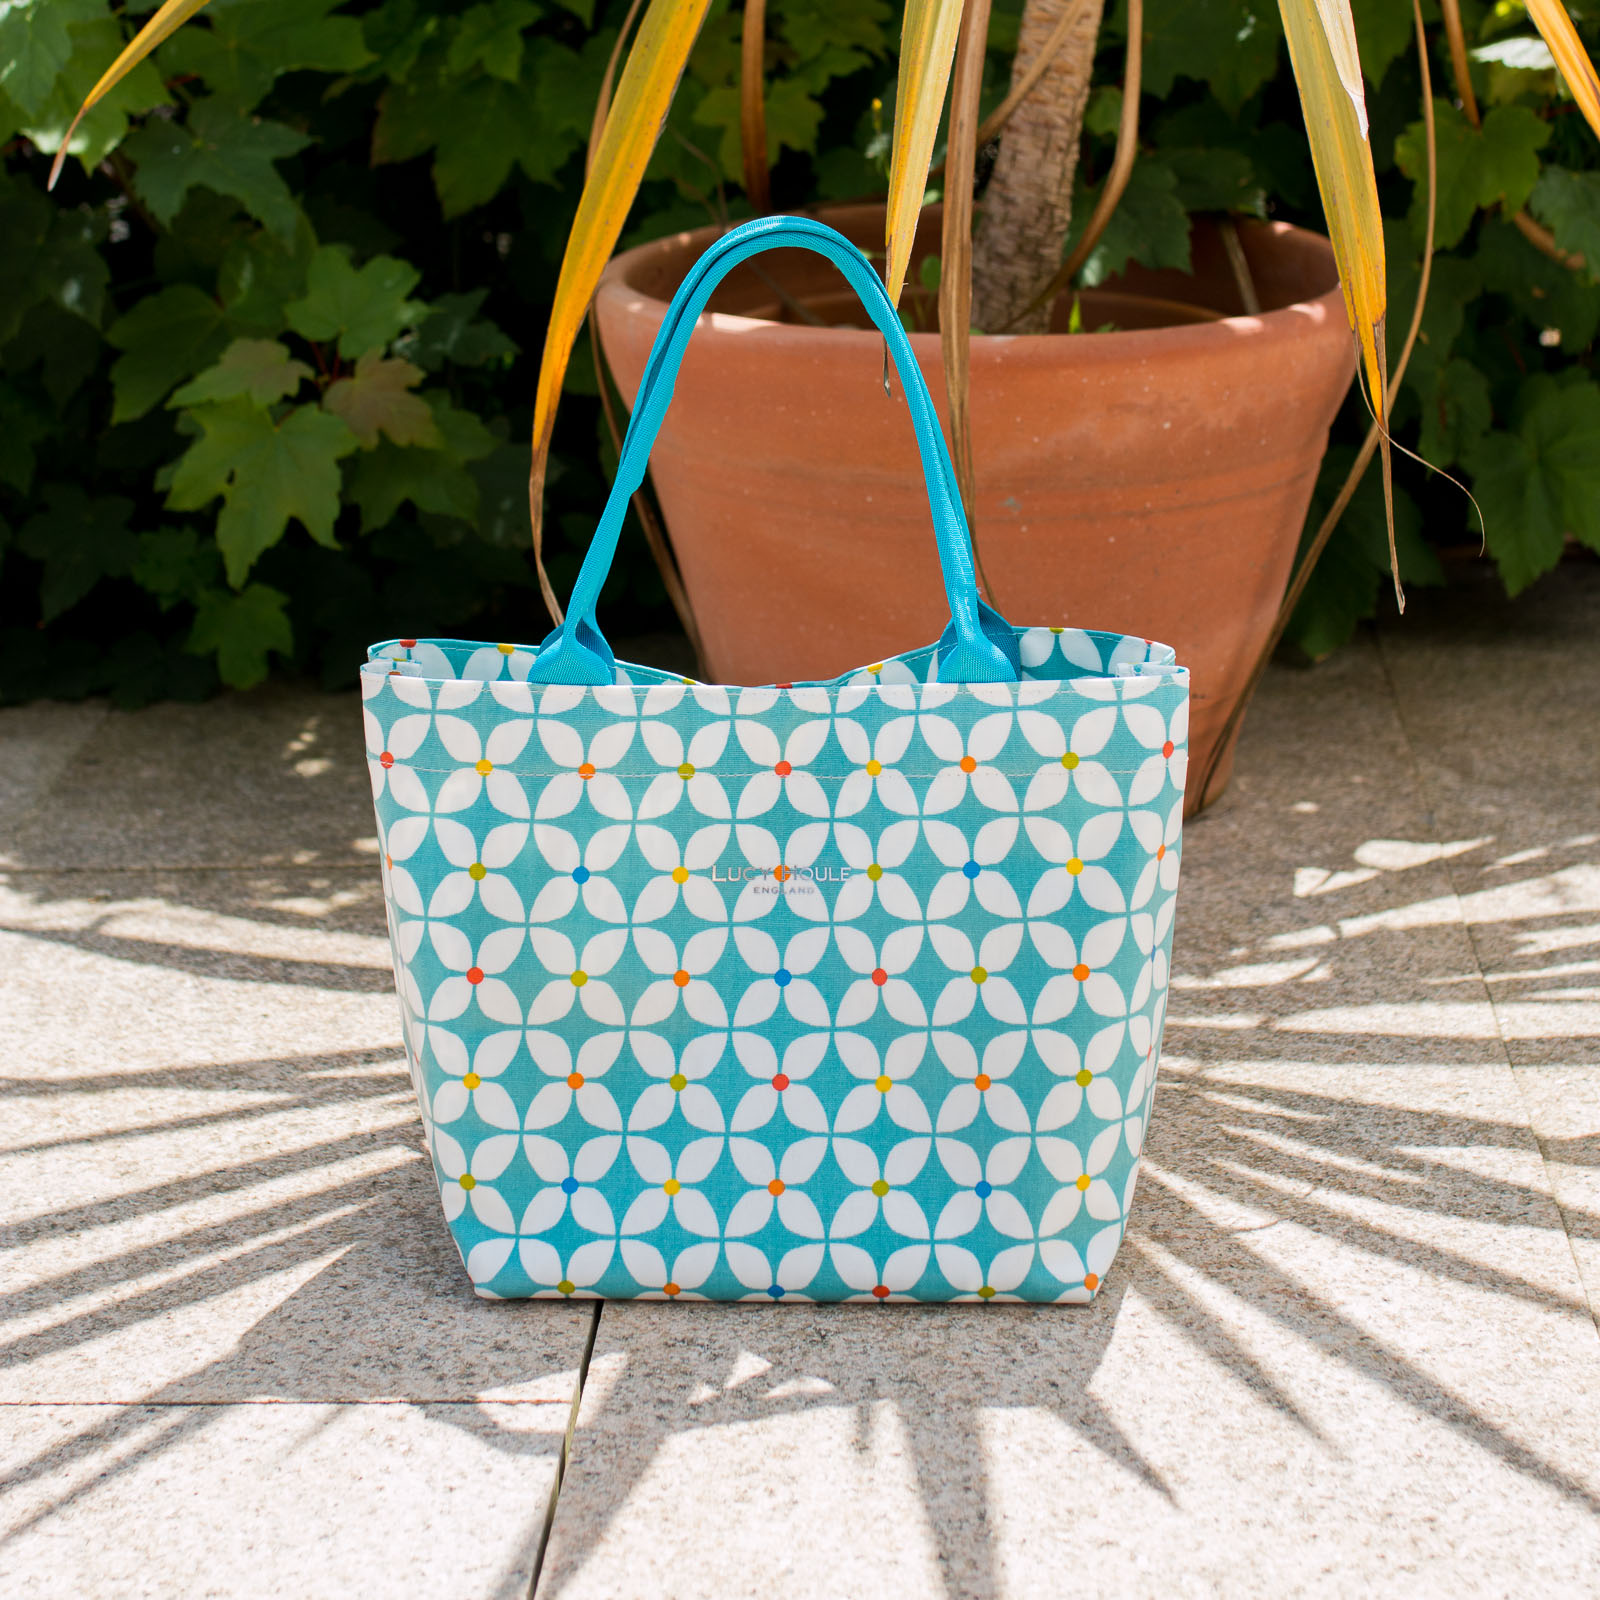 Modern Daisy Aqua Small Zip Tote Bag with Aqua Handles